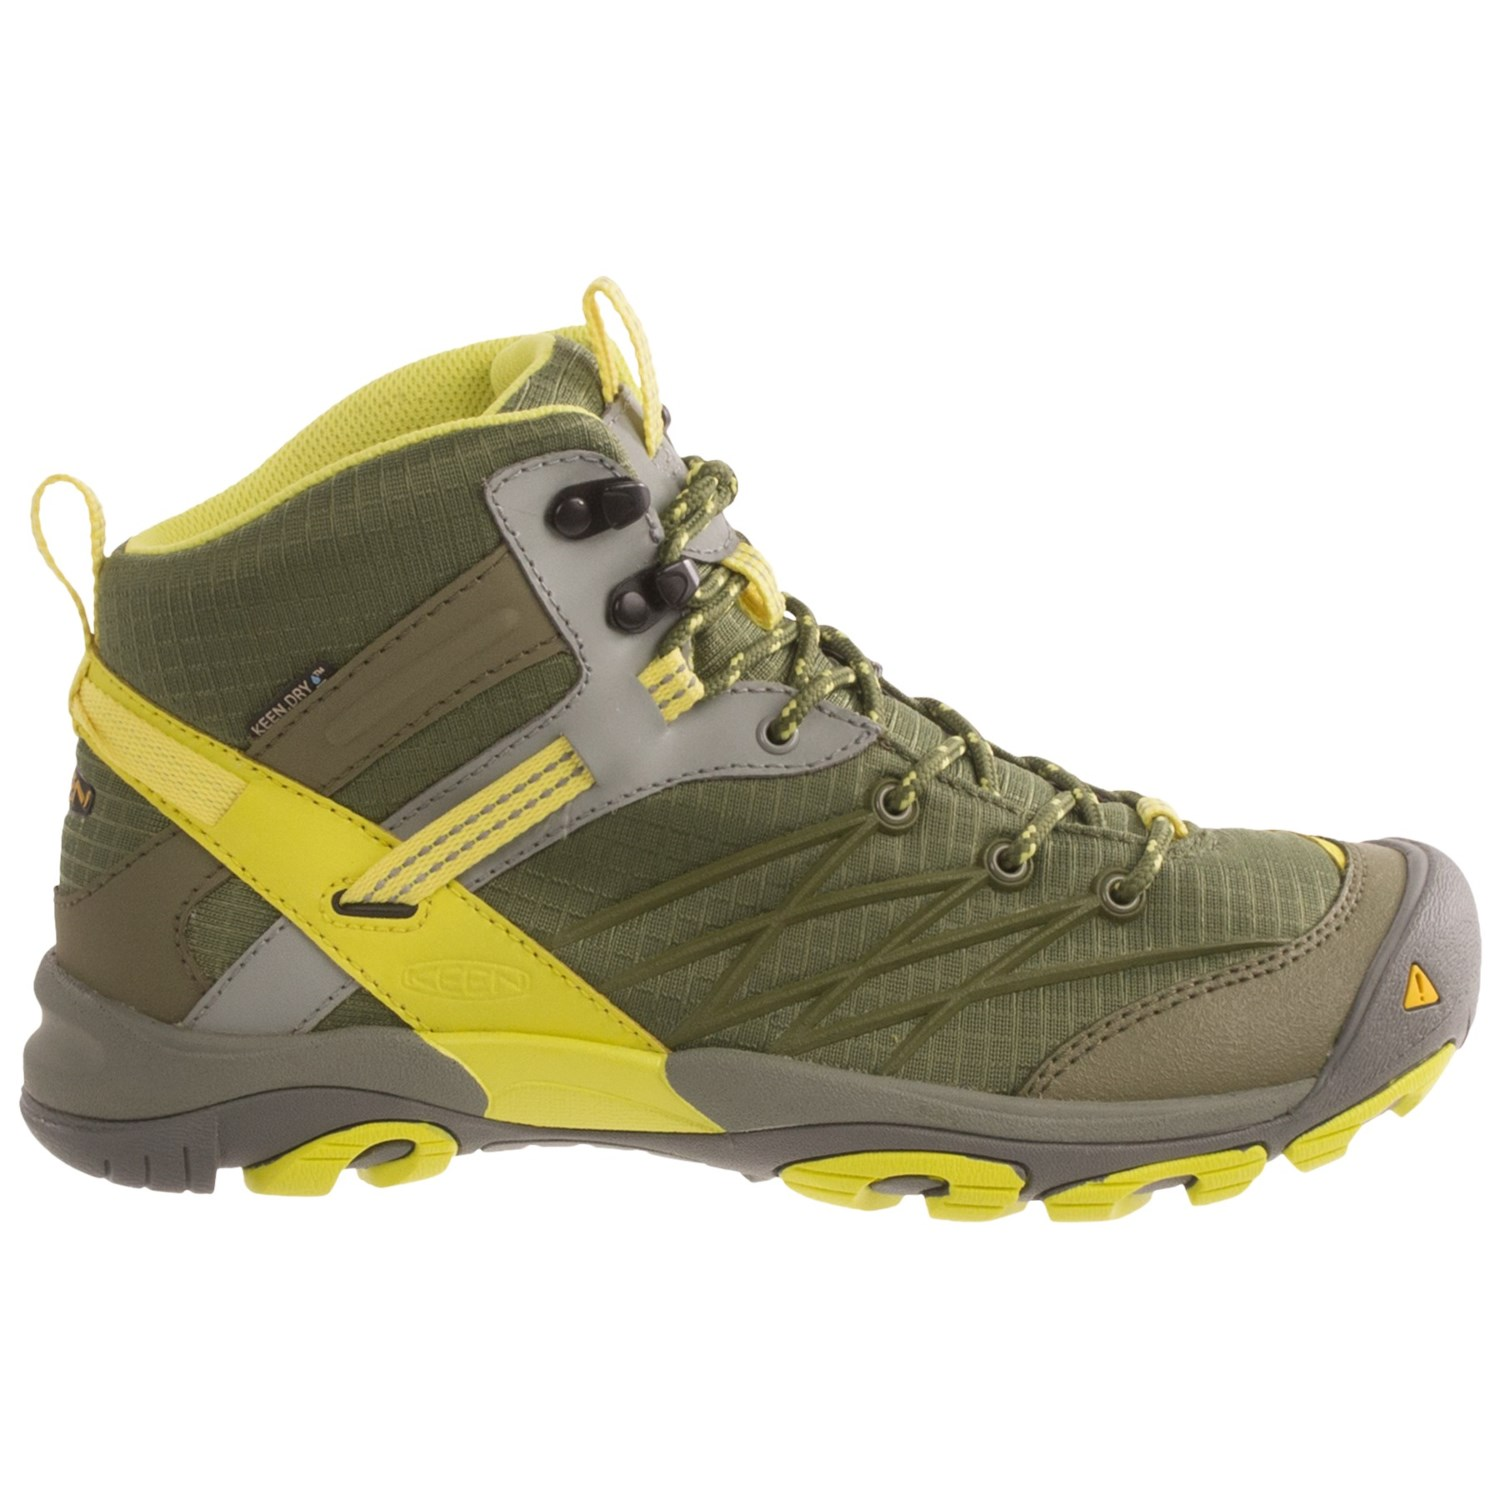 New Keen Glarus Mid Hiking Boots (For Women) 6430G - Save 60%